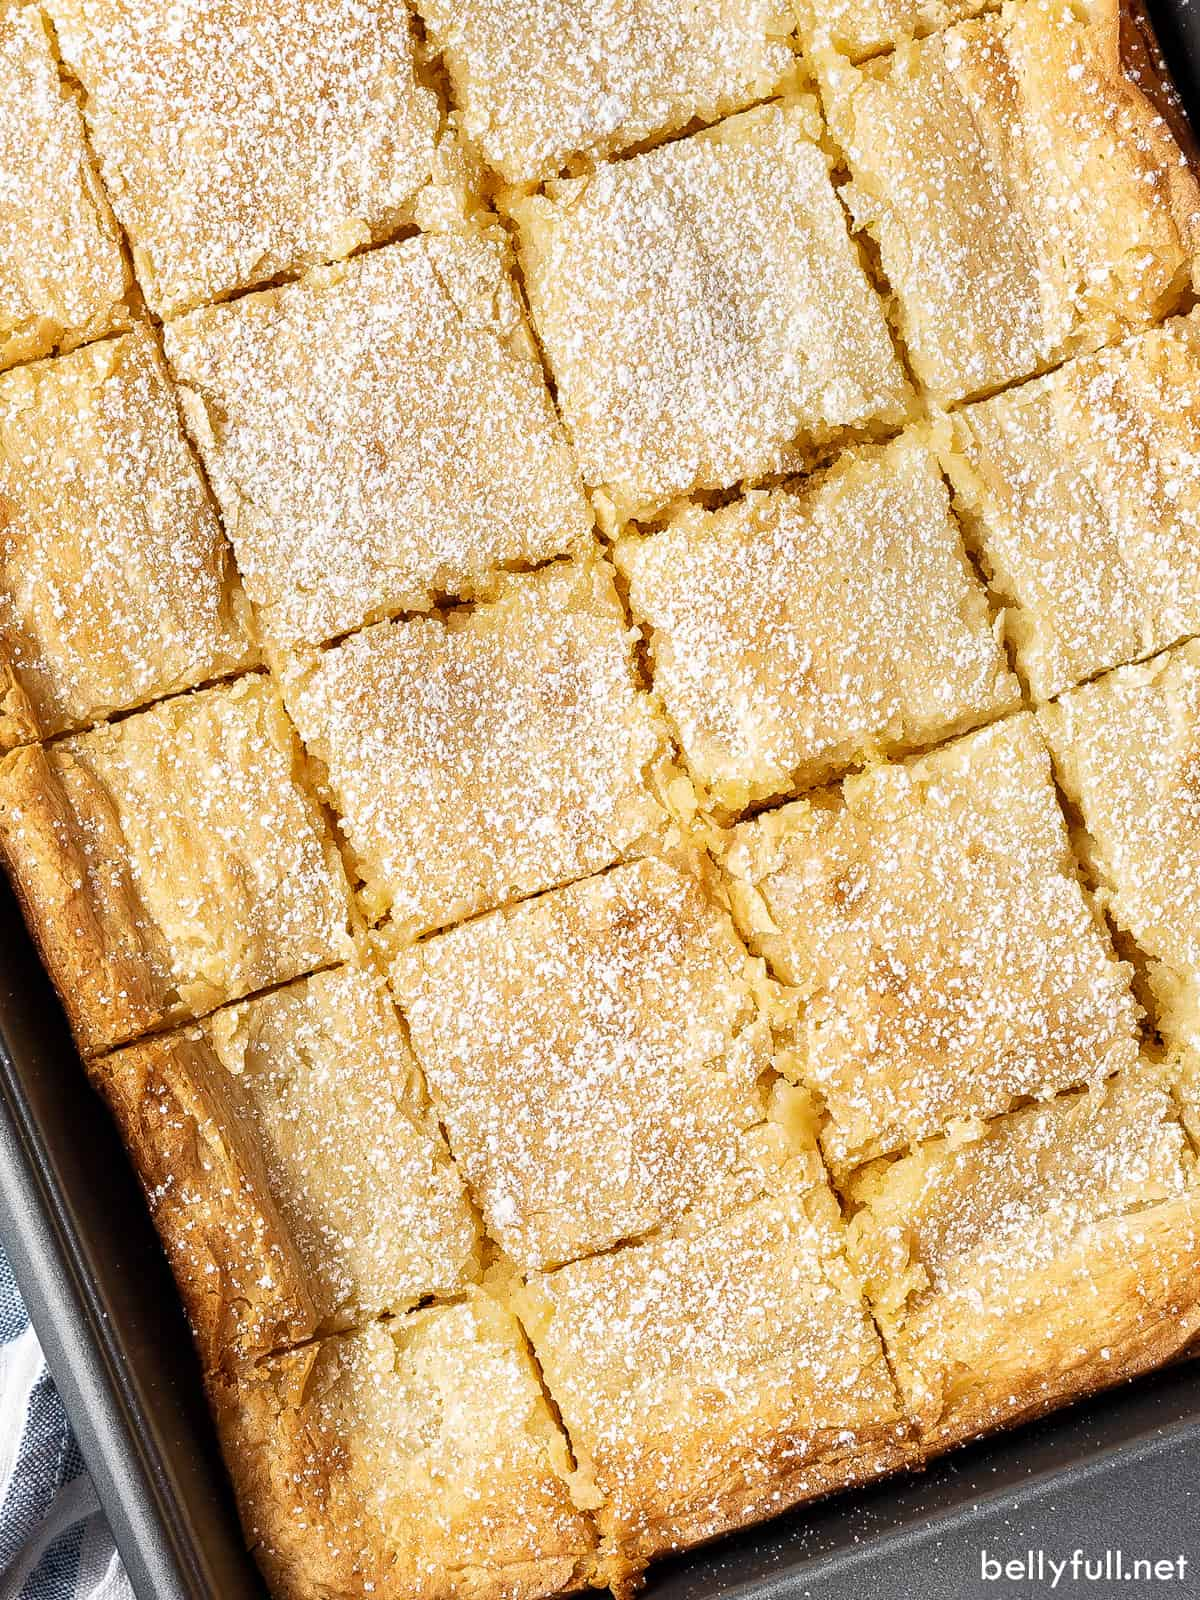 St Louis gooey butter cake cut into squares